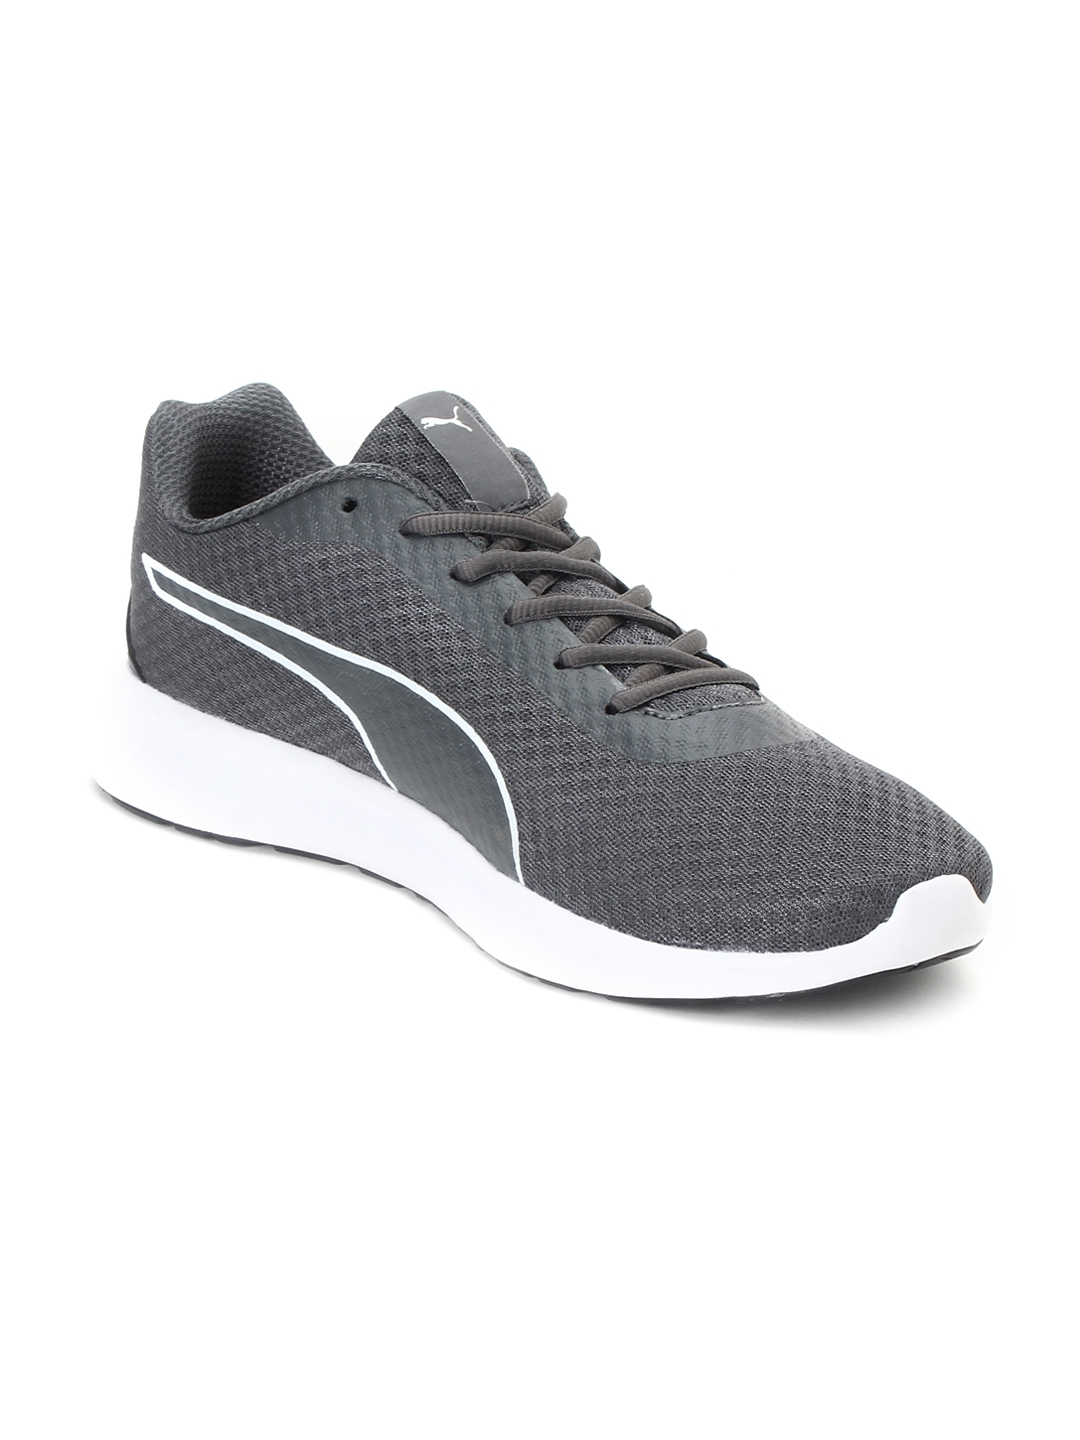 acheter populaire b5954 14919 Puma Men Grey Running Propel EL IDP Shoes